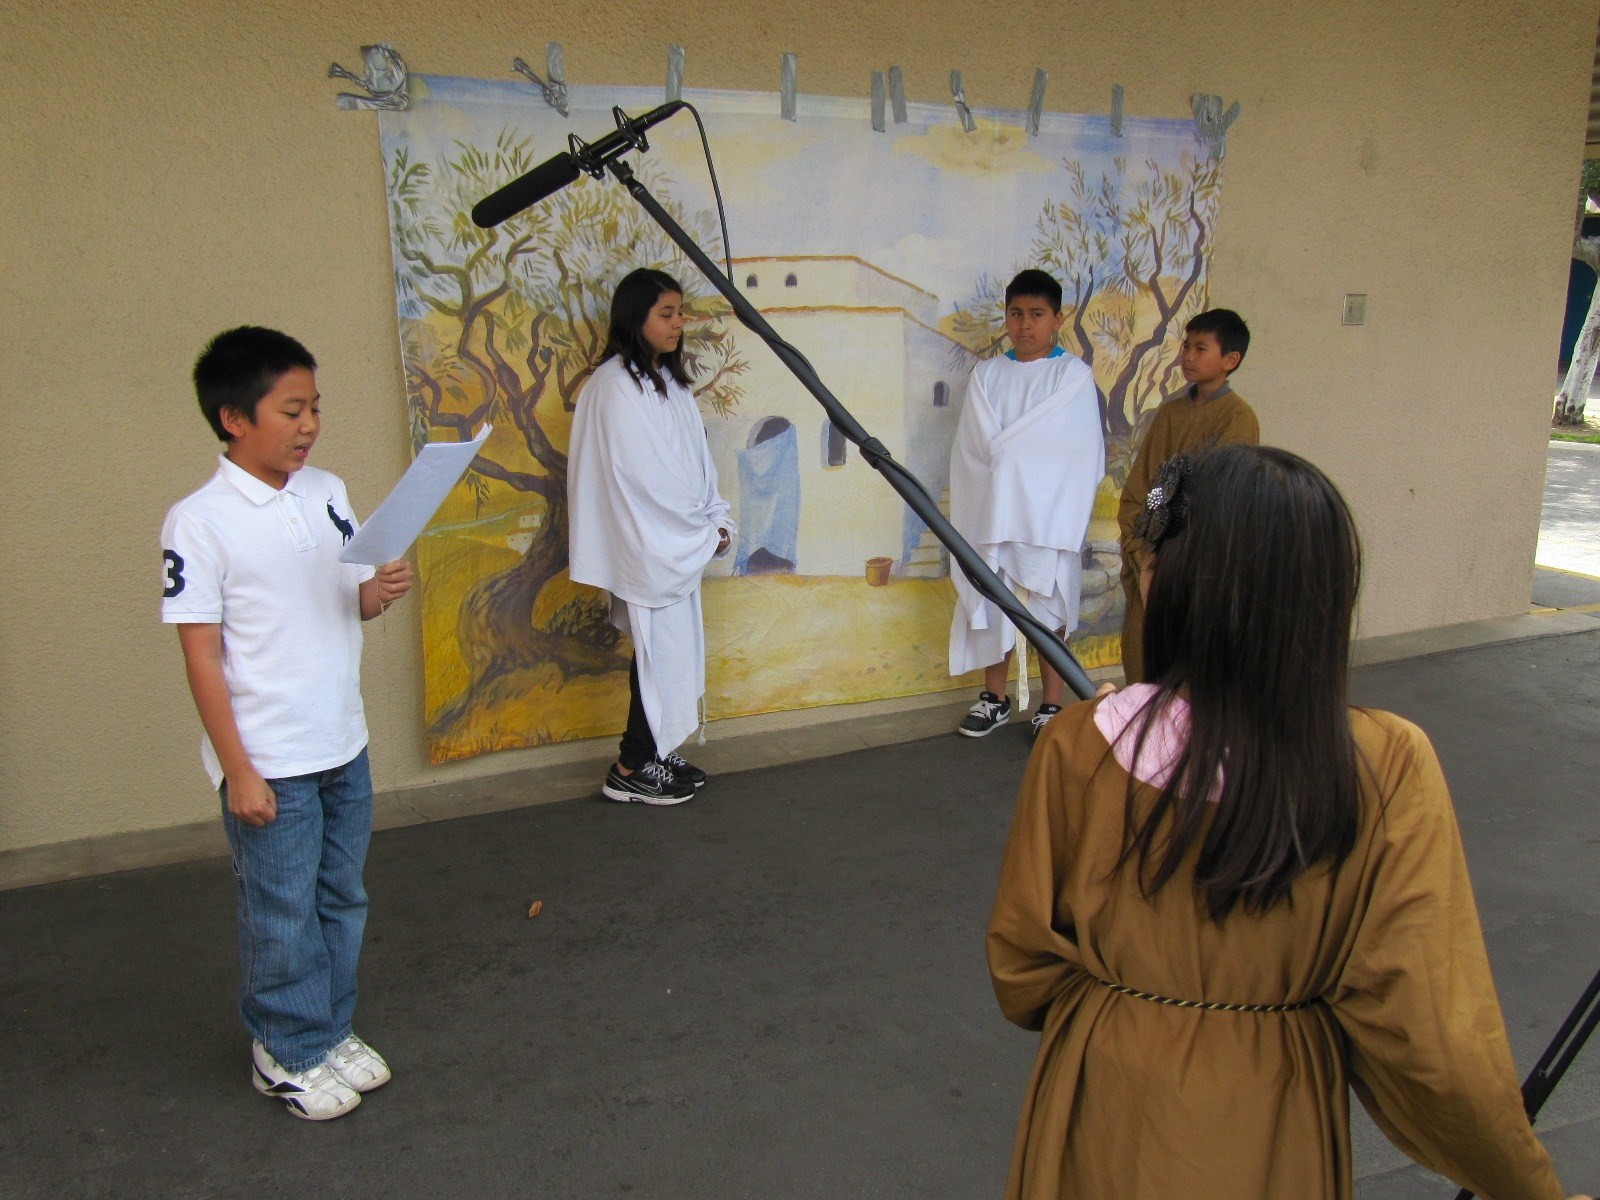 A group of students filming a scene in a movie.